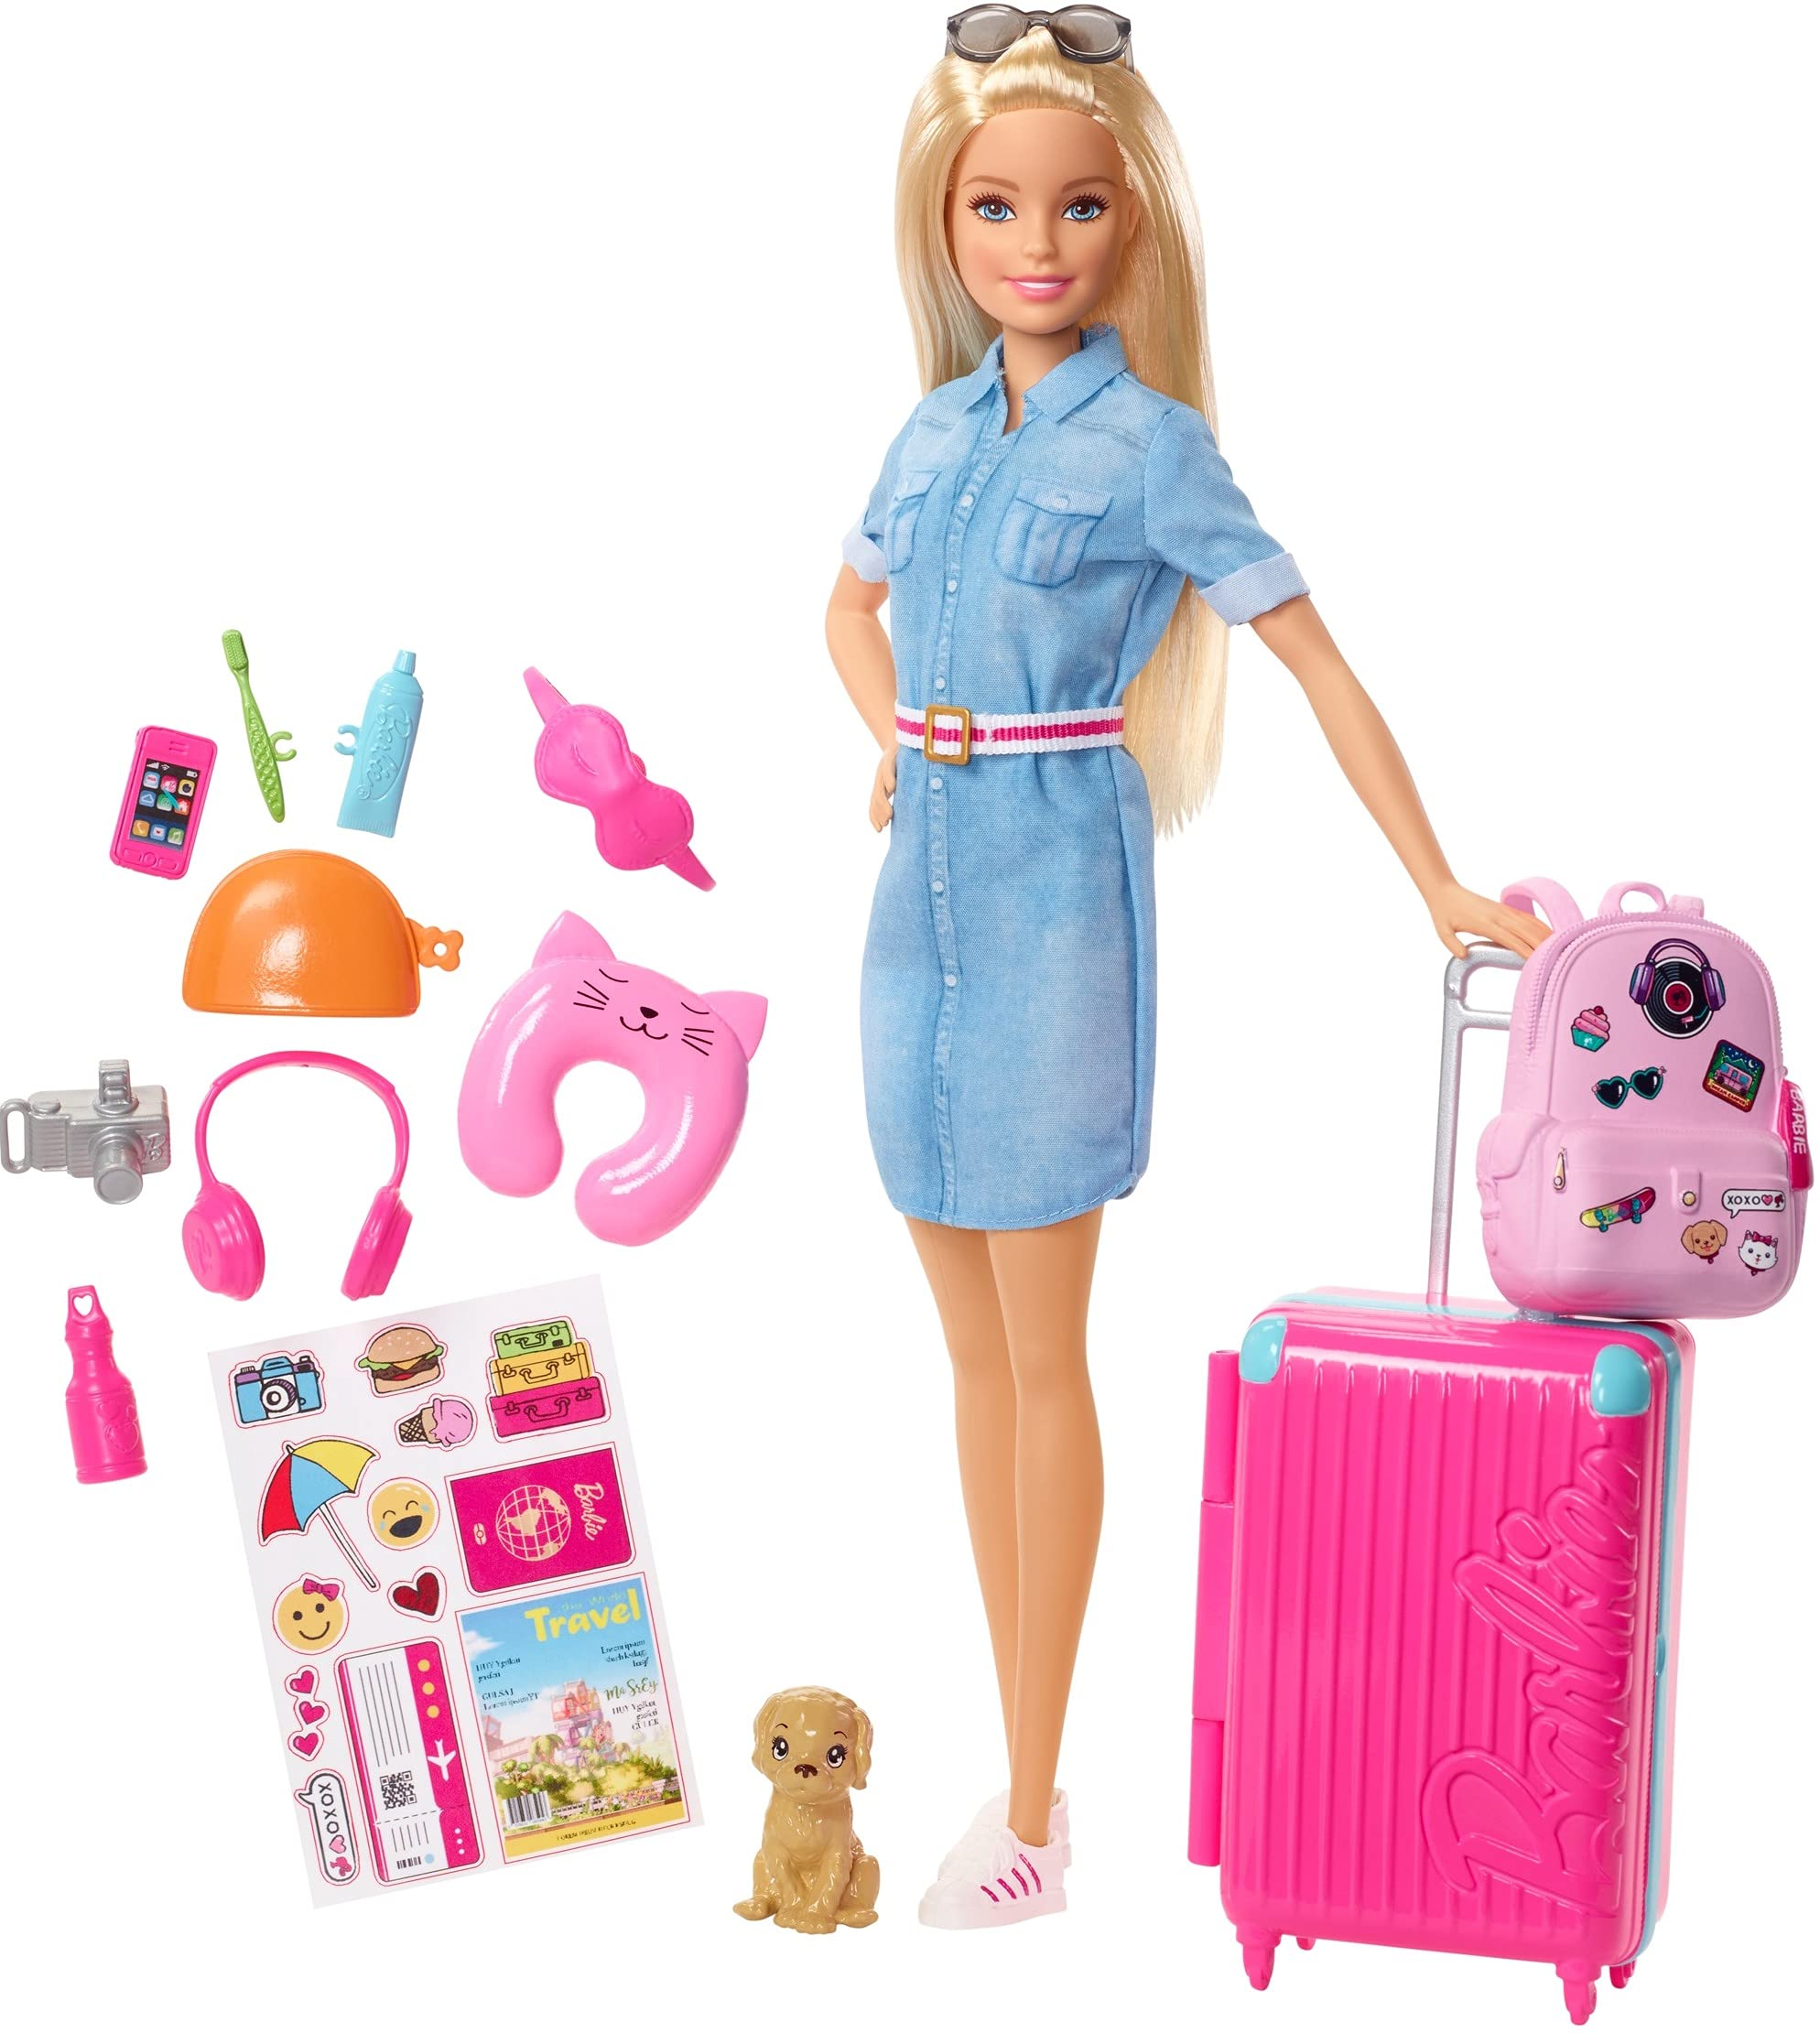 Barbie Travel Doll, Blonde, with Puppy, Opening Suitcase, Stickers and 10+ Accessories, for 3 to 7 Year Olds